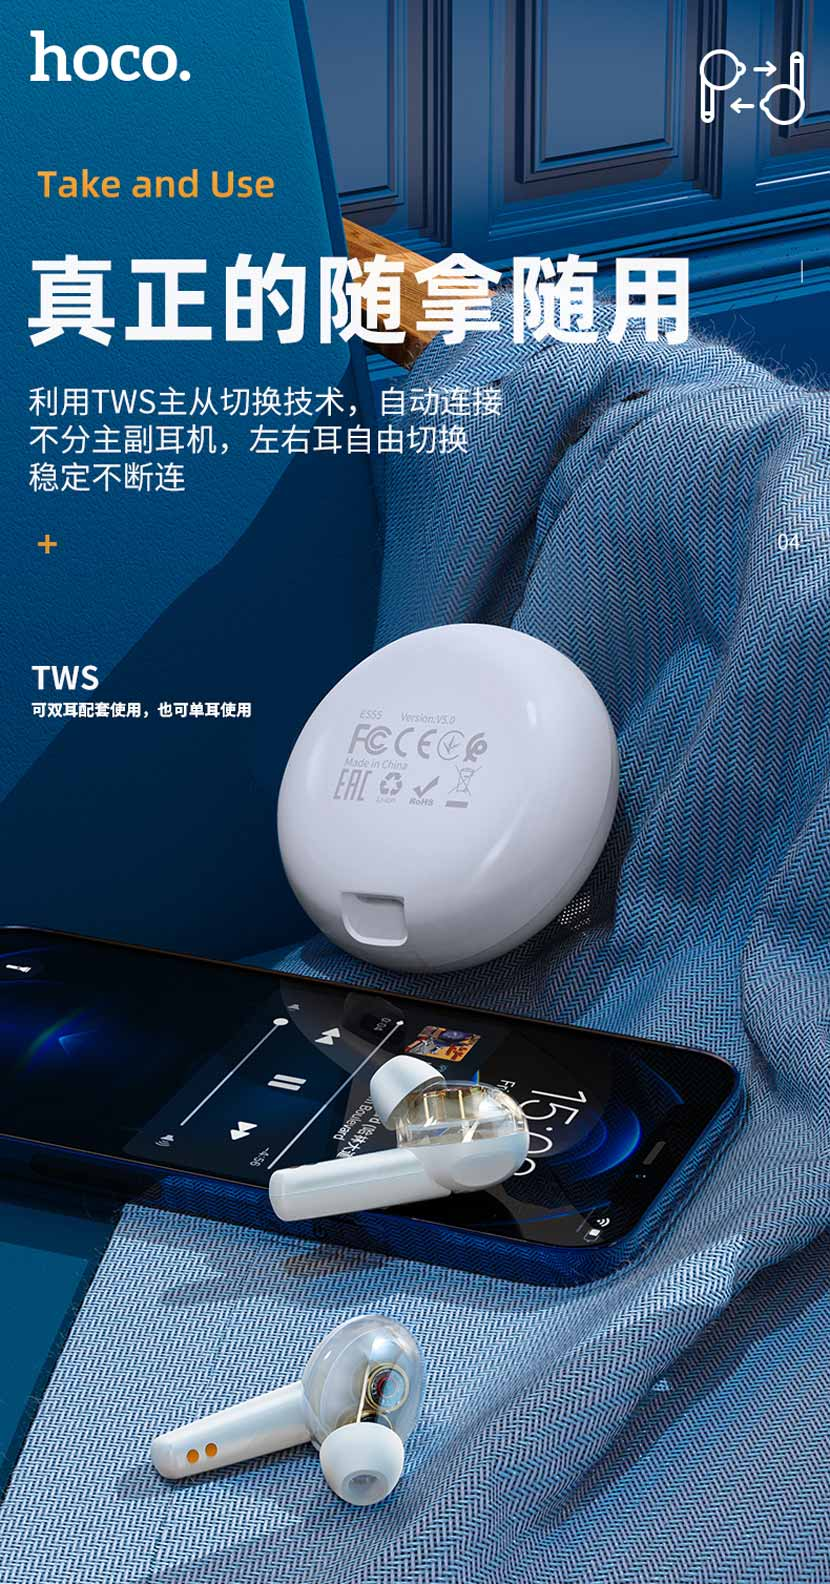 hoco news es55 songful tws dual moving coil wireless bt headset connection cn